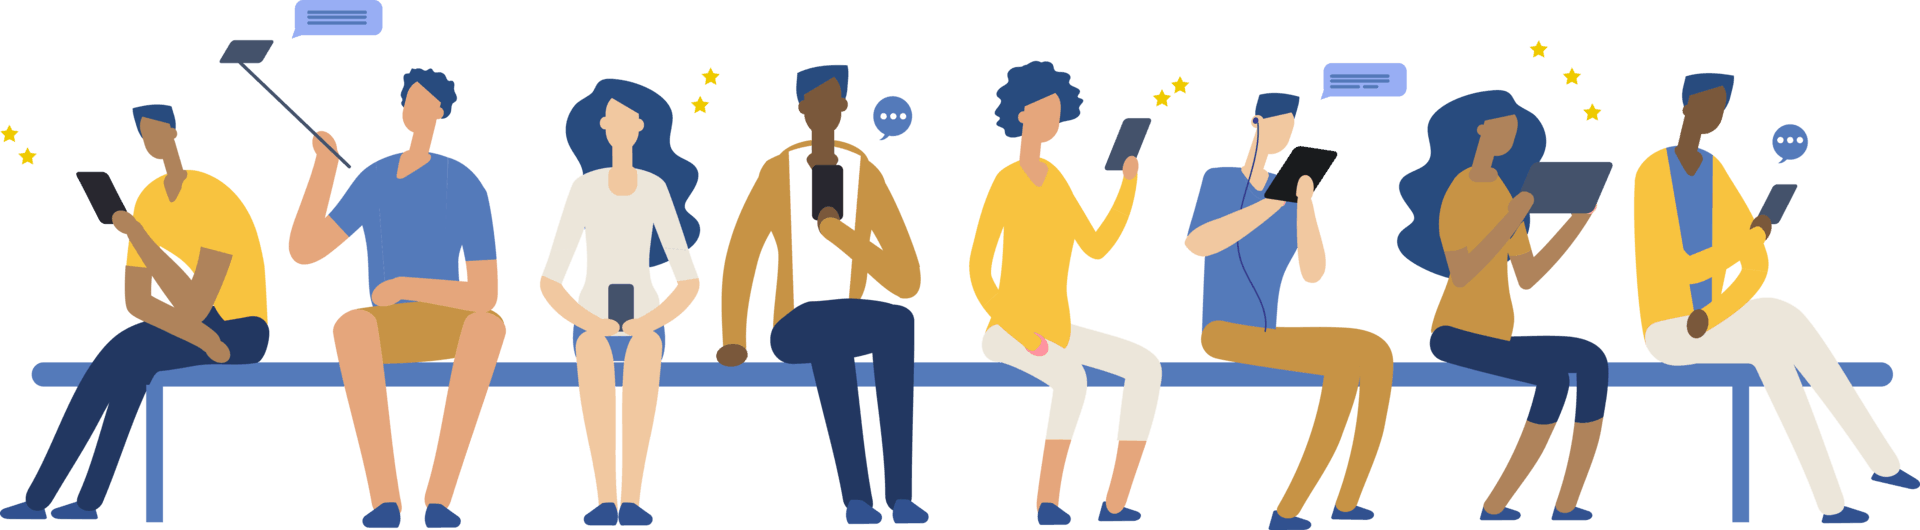 people-on-phone-banner